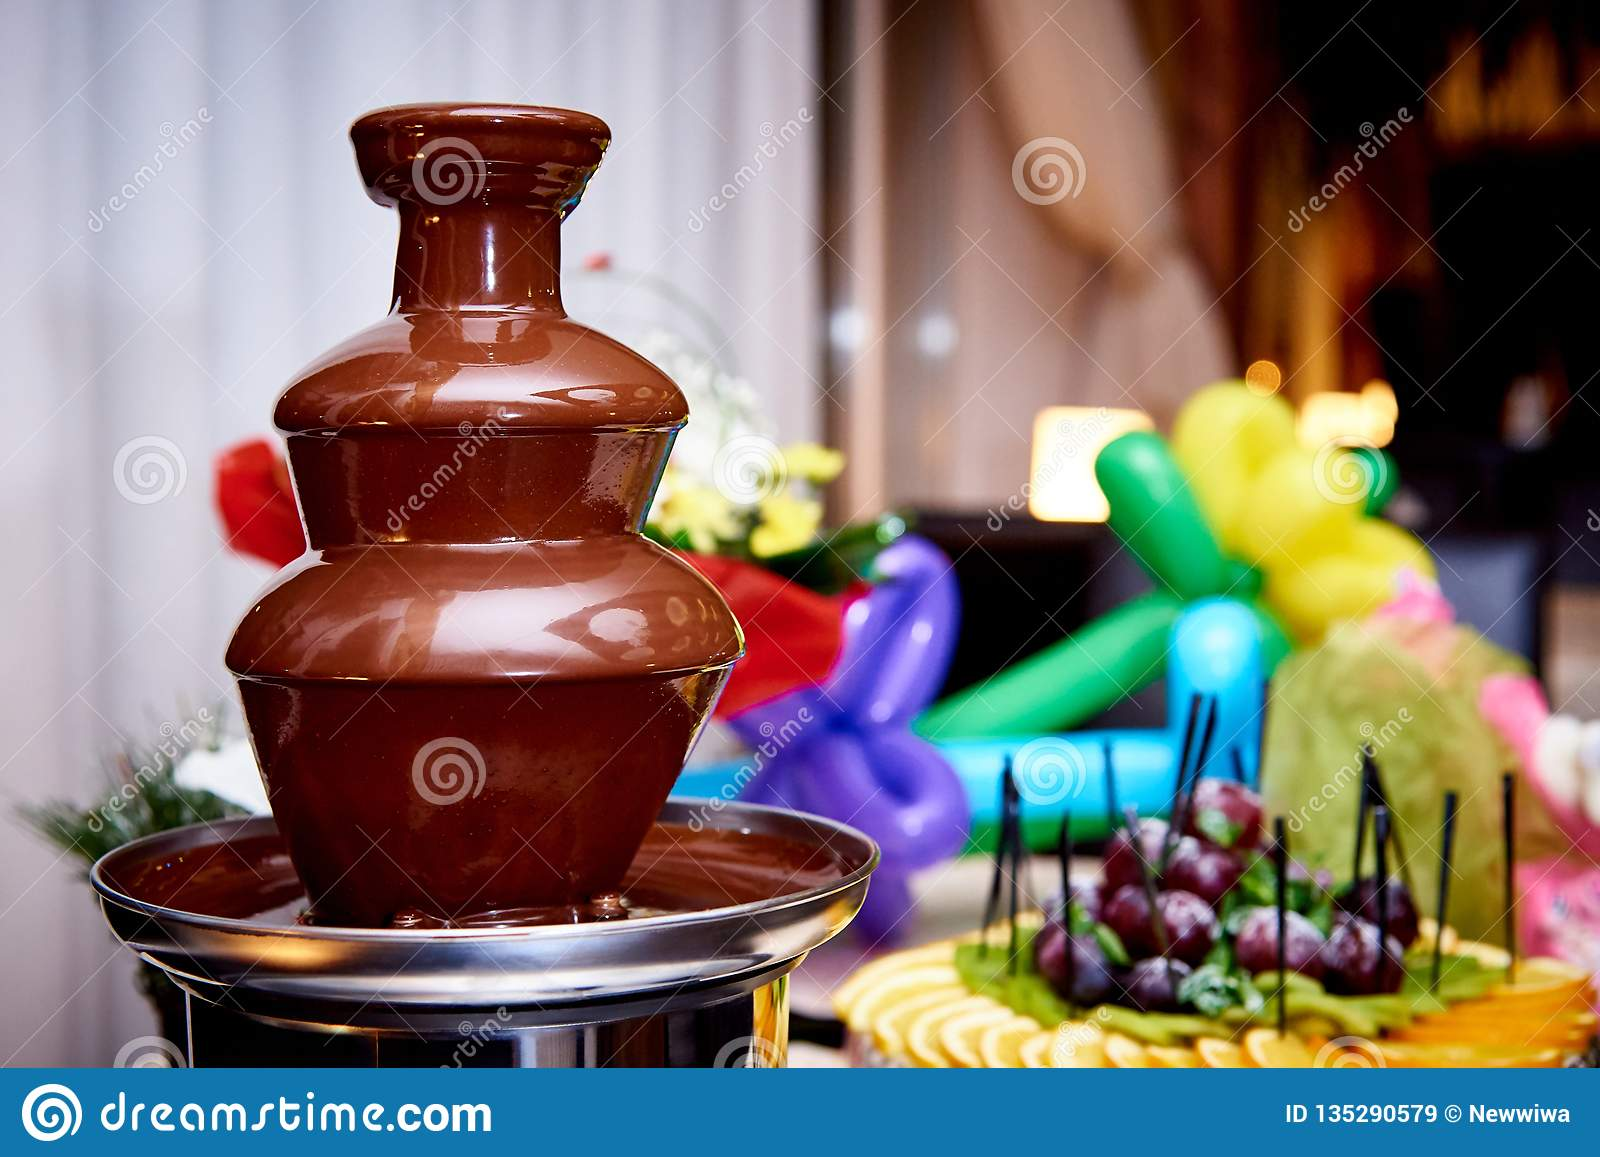 Chocolate fountain on a blurred background with fresh fruits